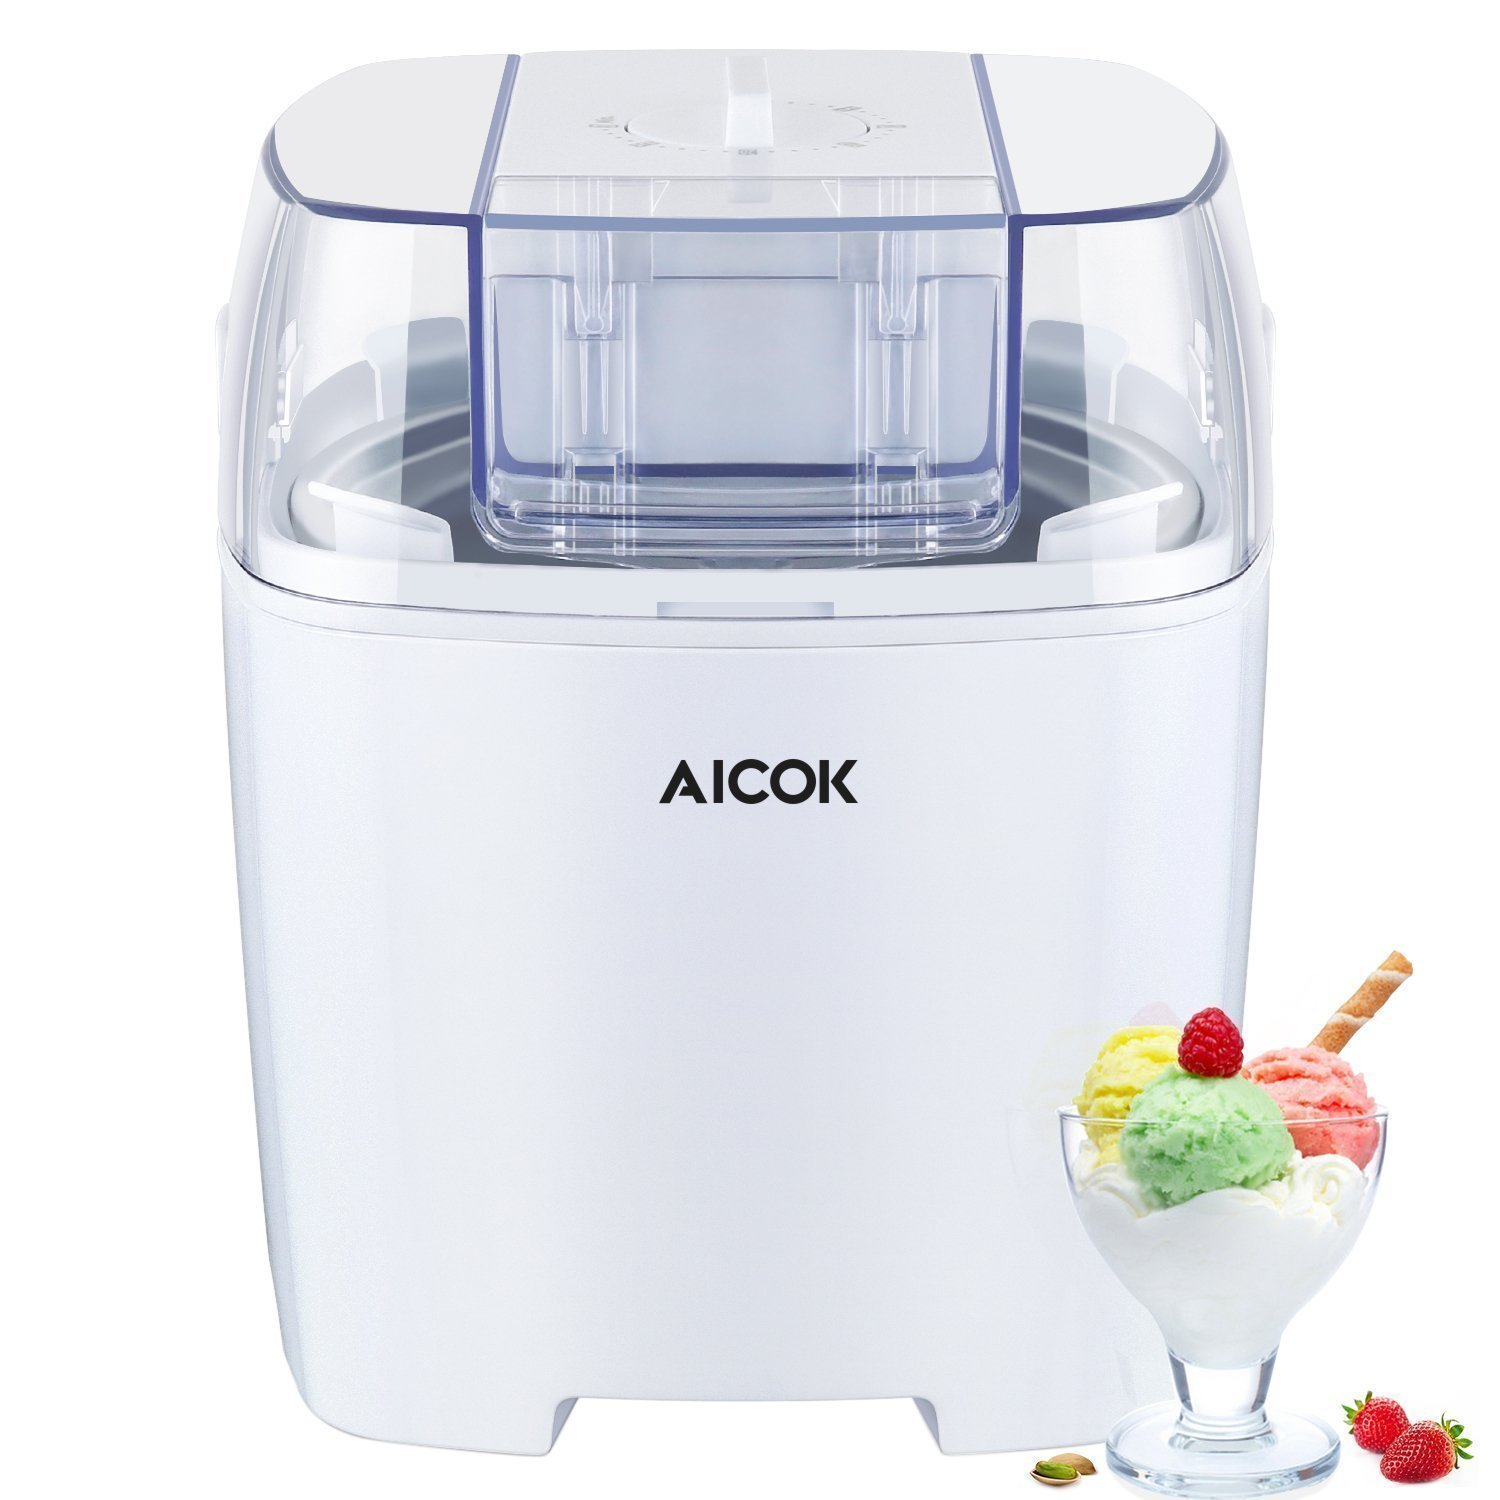 Aicok Ice Cream Maker, 1.5 Quart Ice Cream Machine, Frozen Yogurt and Sorbet Machine with Timer Function and Recipe Book, White